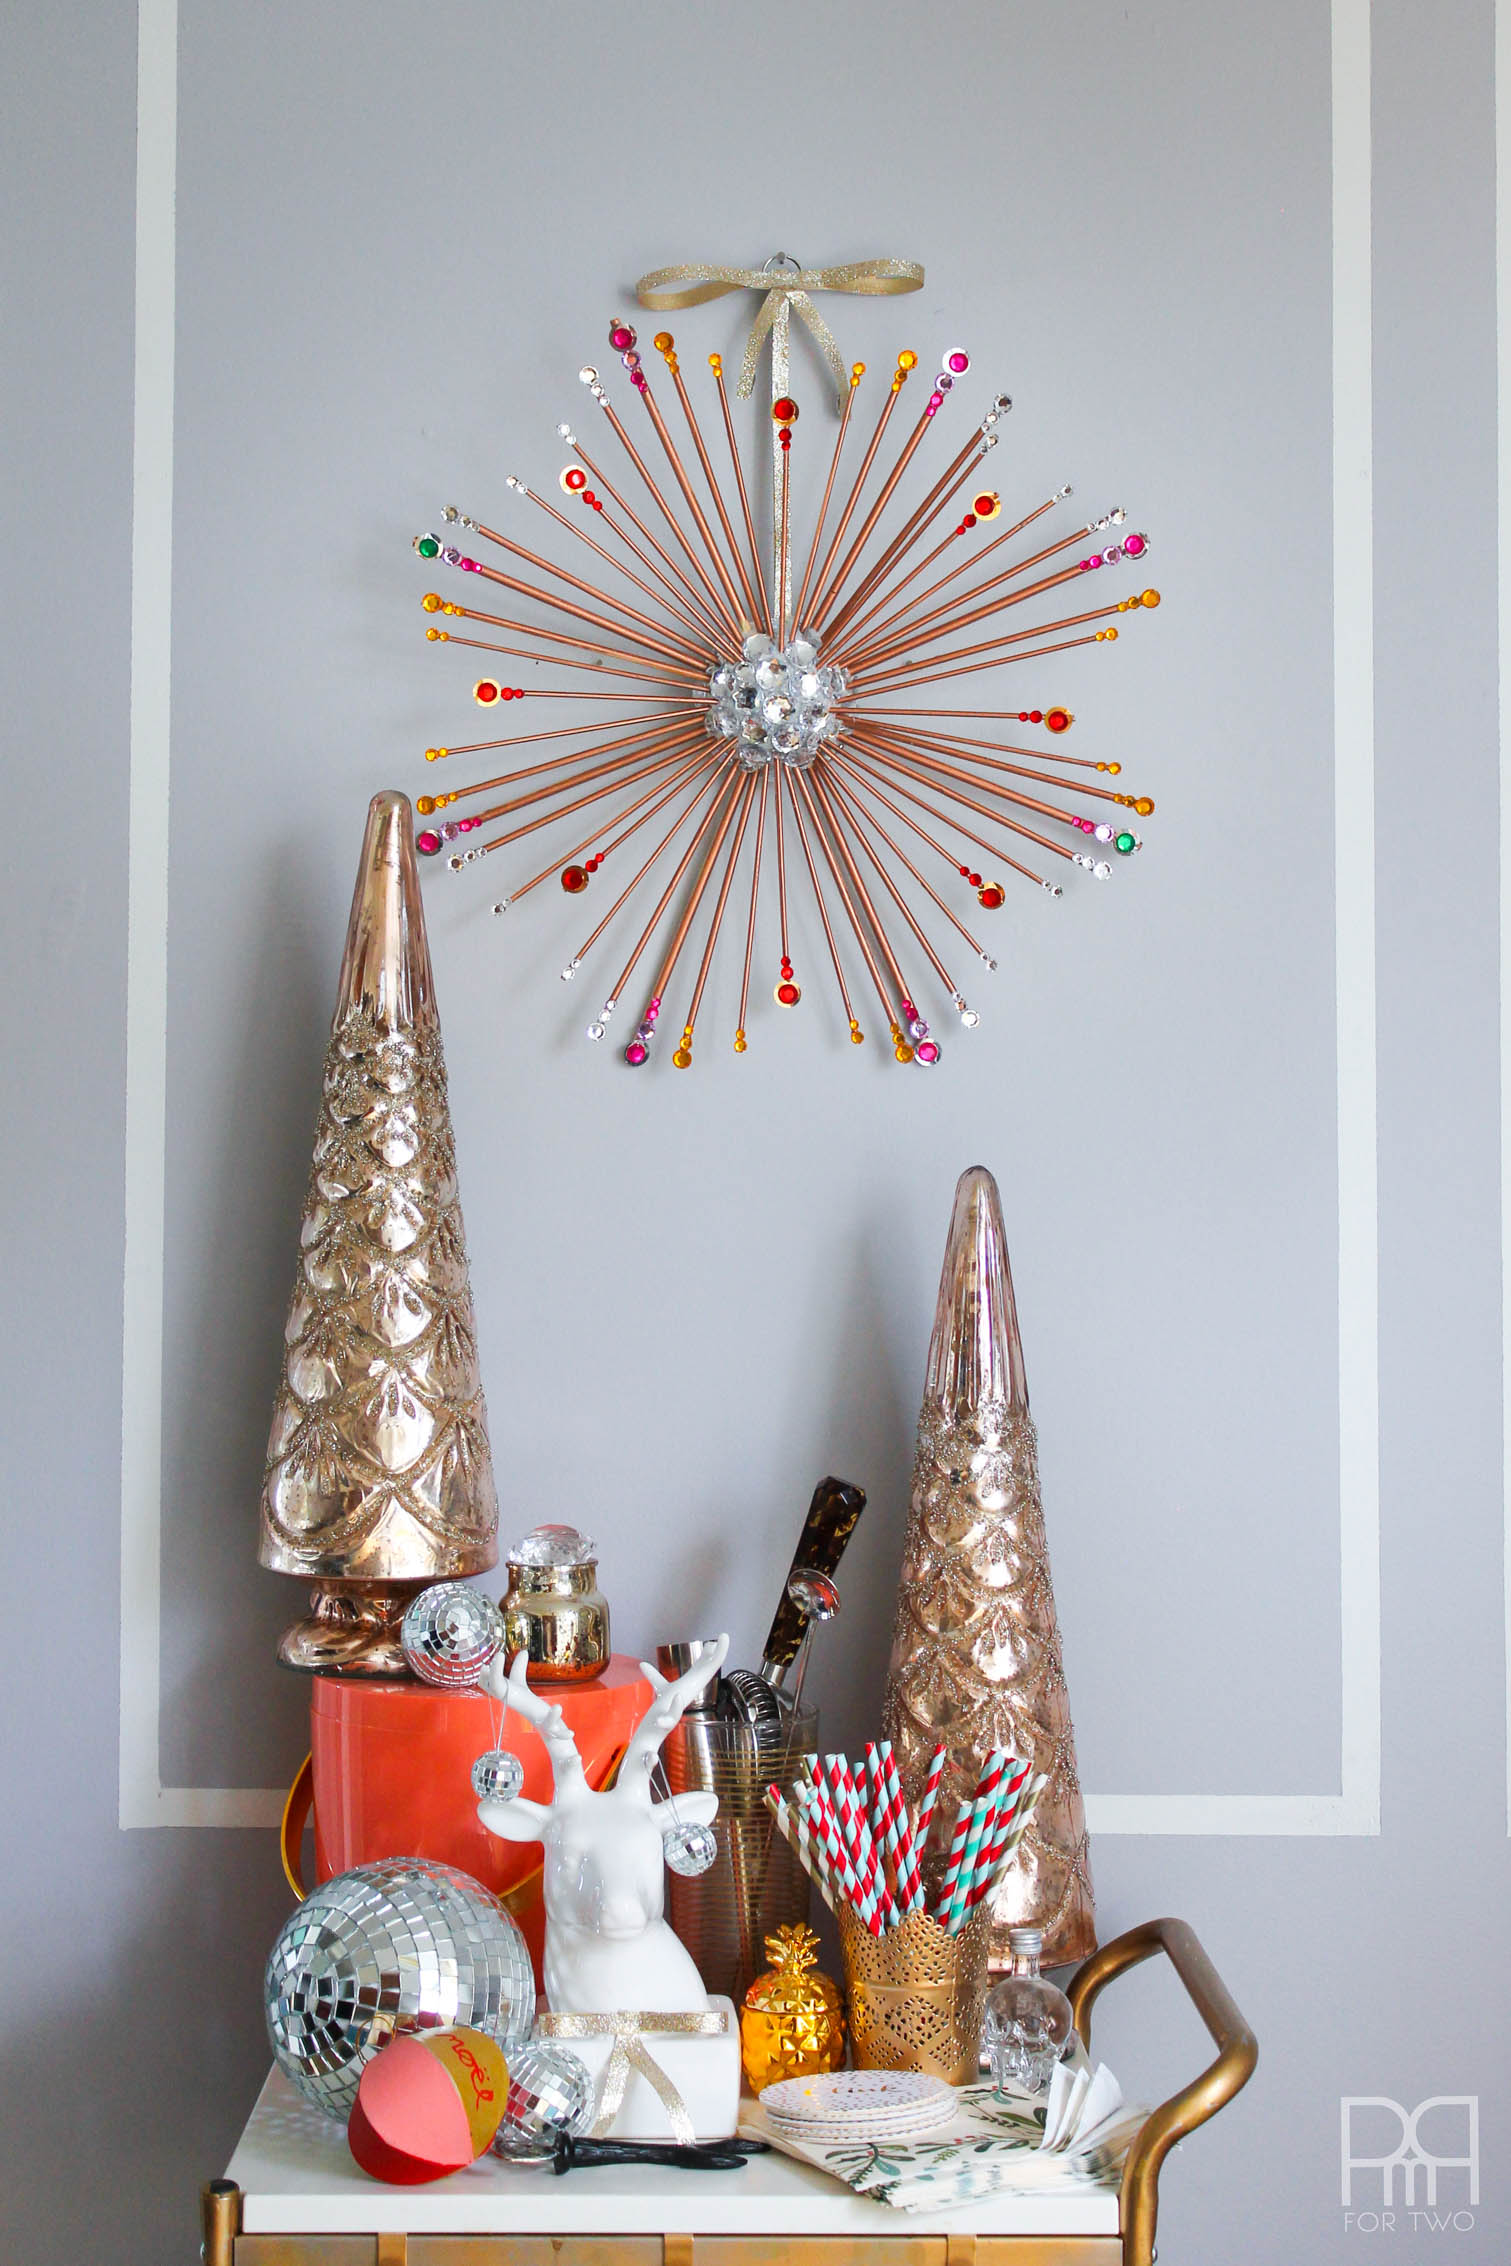 DIY Starburst Wreath